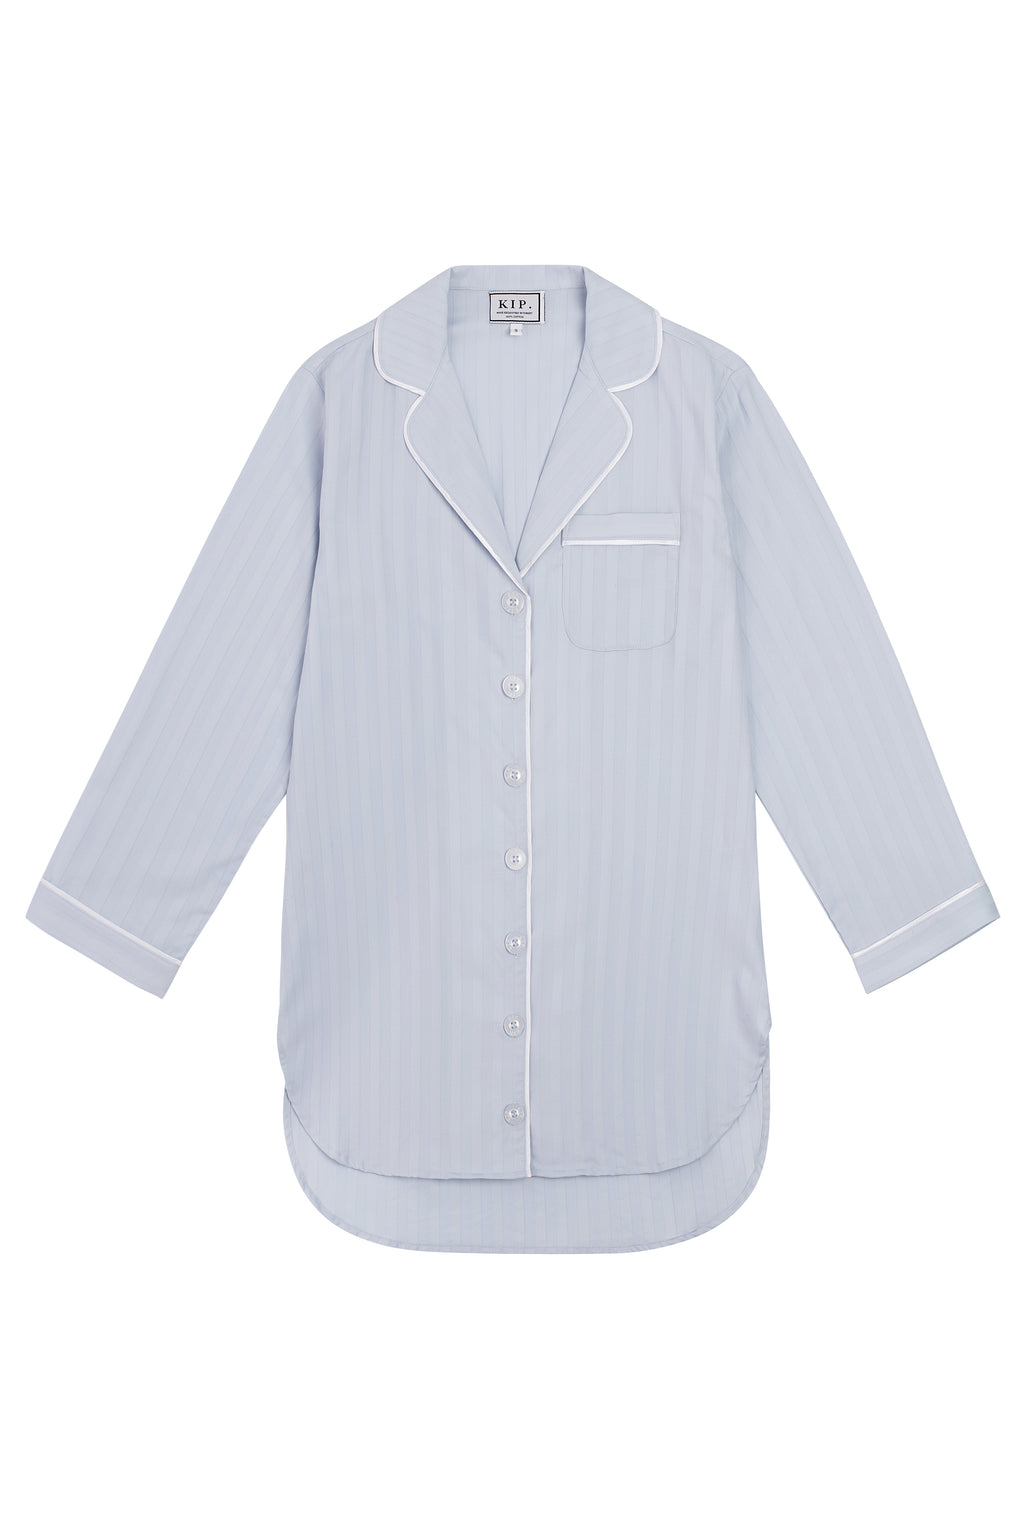 Premium Cotton Nightshirt in Mist Blue